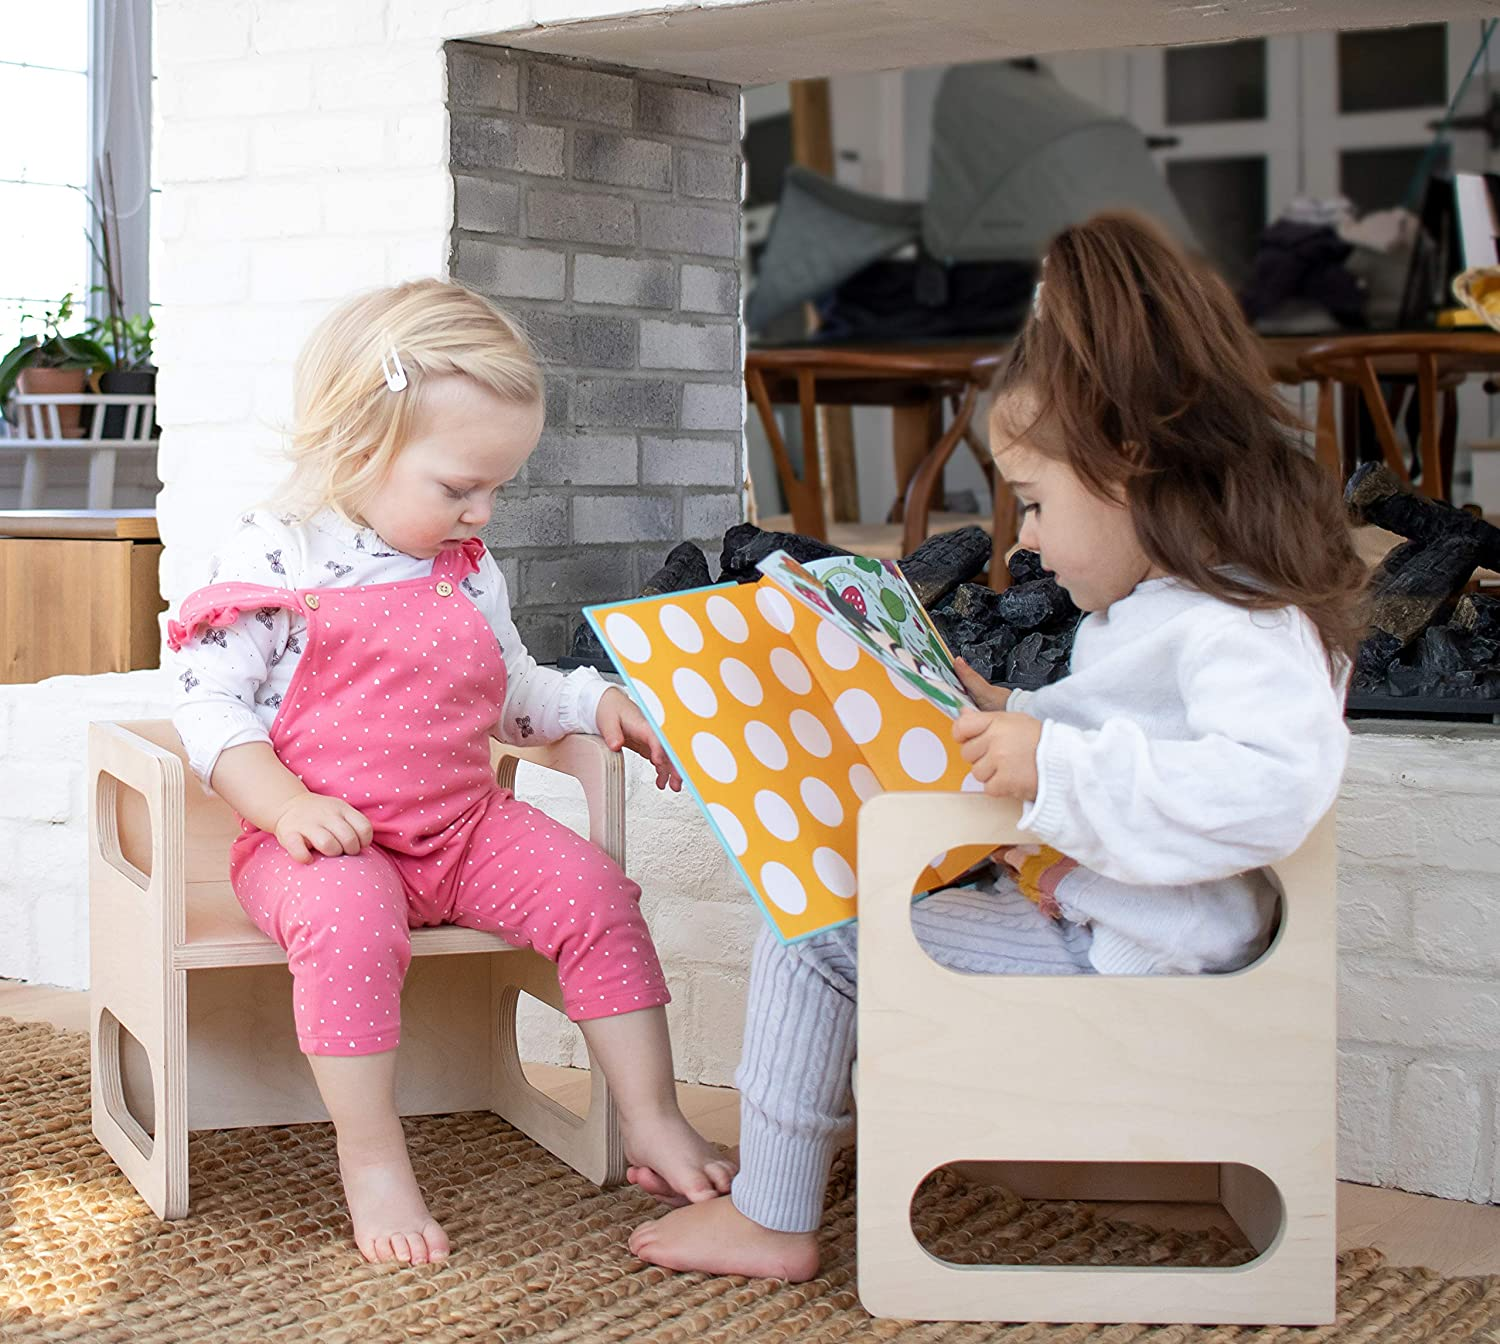 Kids Furniture Montessori Cube Chair Kids Chair Scandinavian Style Cube Chair Montessori Cube Montessori Furniture Cube Table Kimboo Montessori Cube Set Of 2 Made In Canada Original Pure Kids Table Chairs